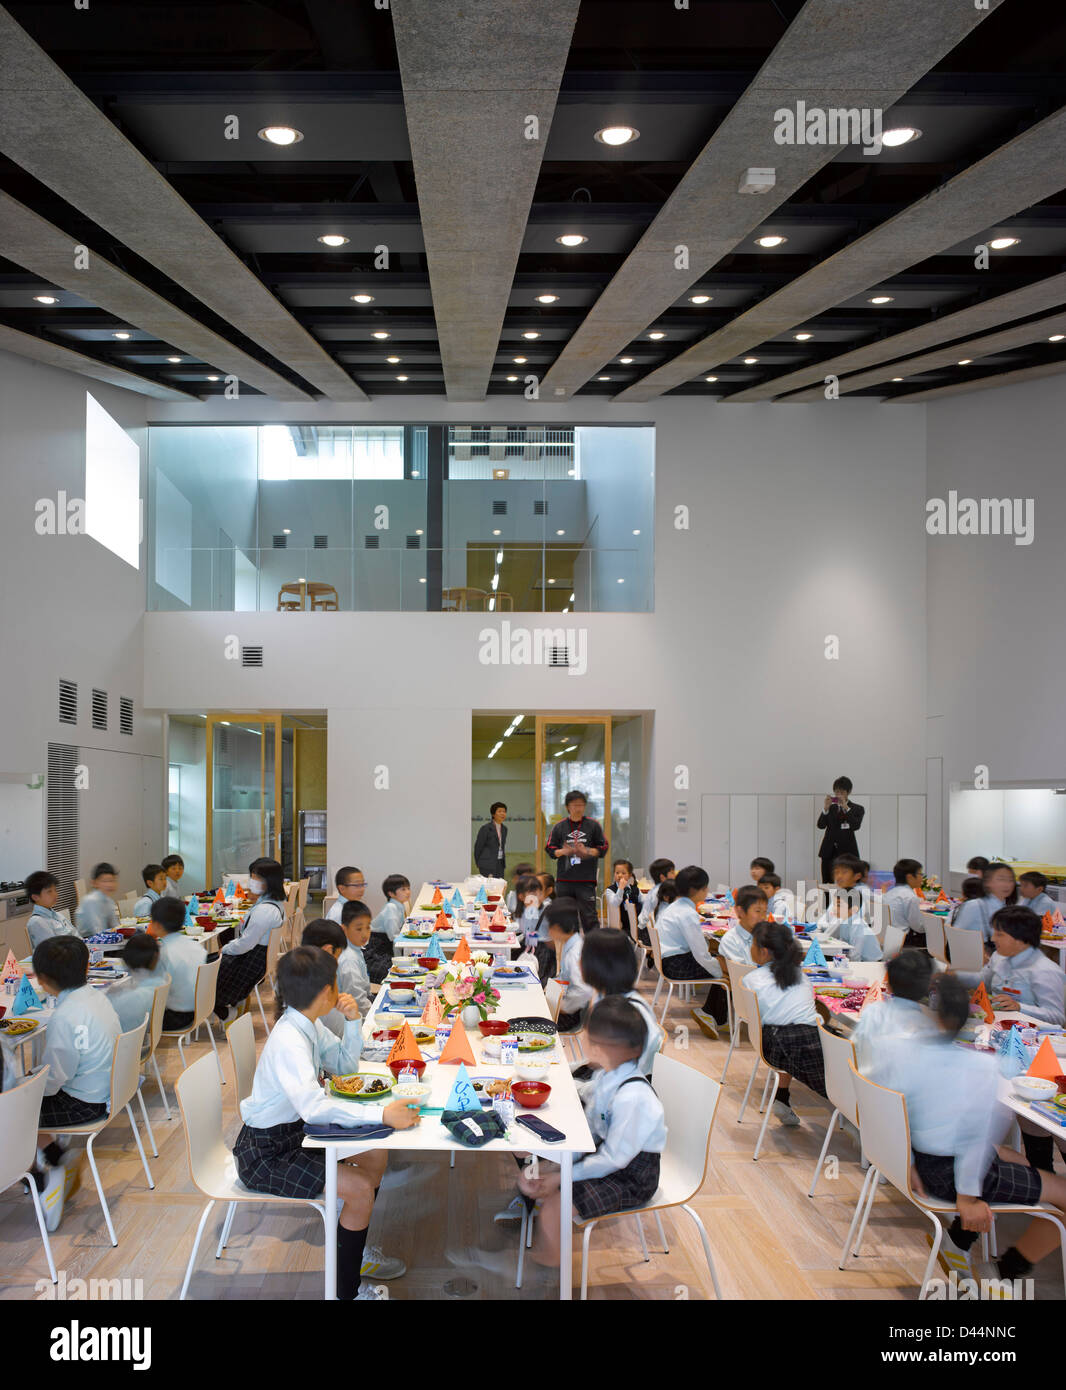 Teikyo University Elementary School Tokyo Japan Architect Kengo Kuma 2012 Interior View Overall In Dinning Hall Durin